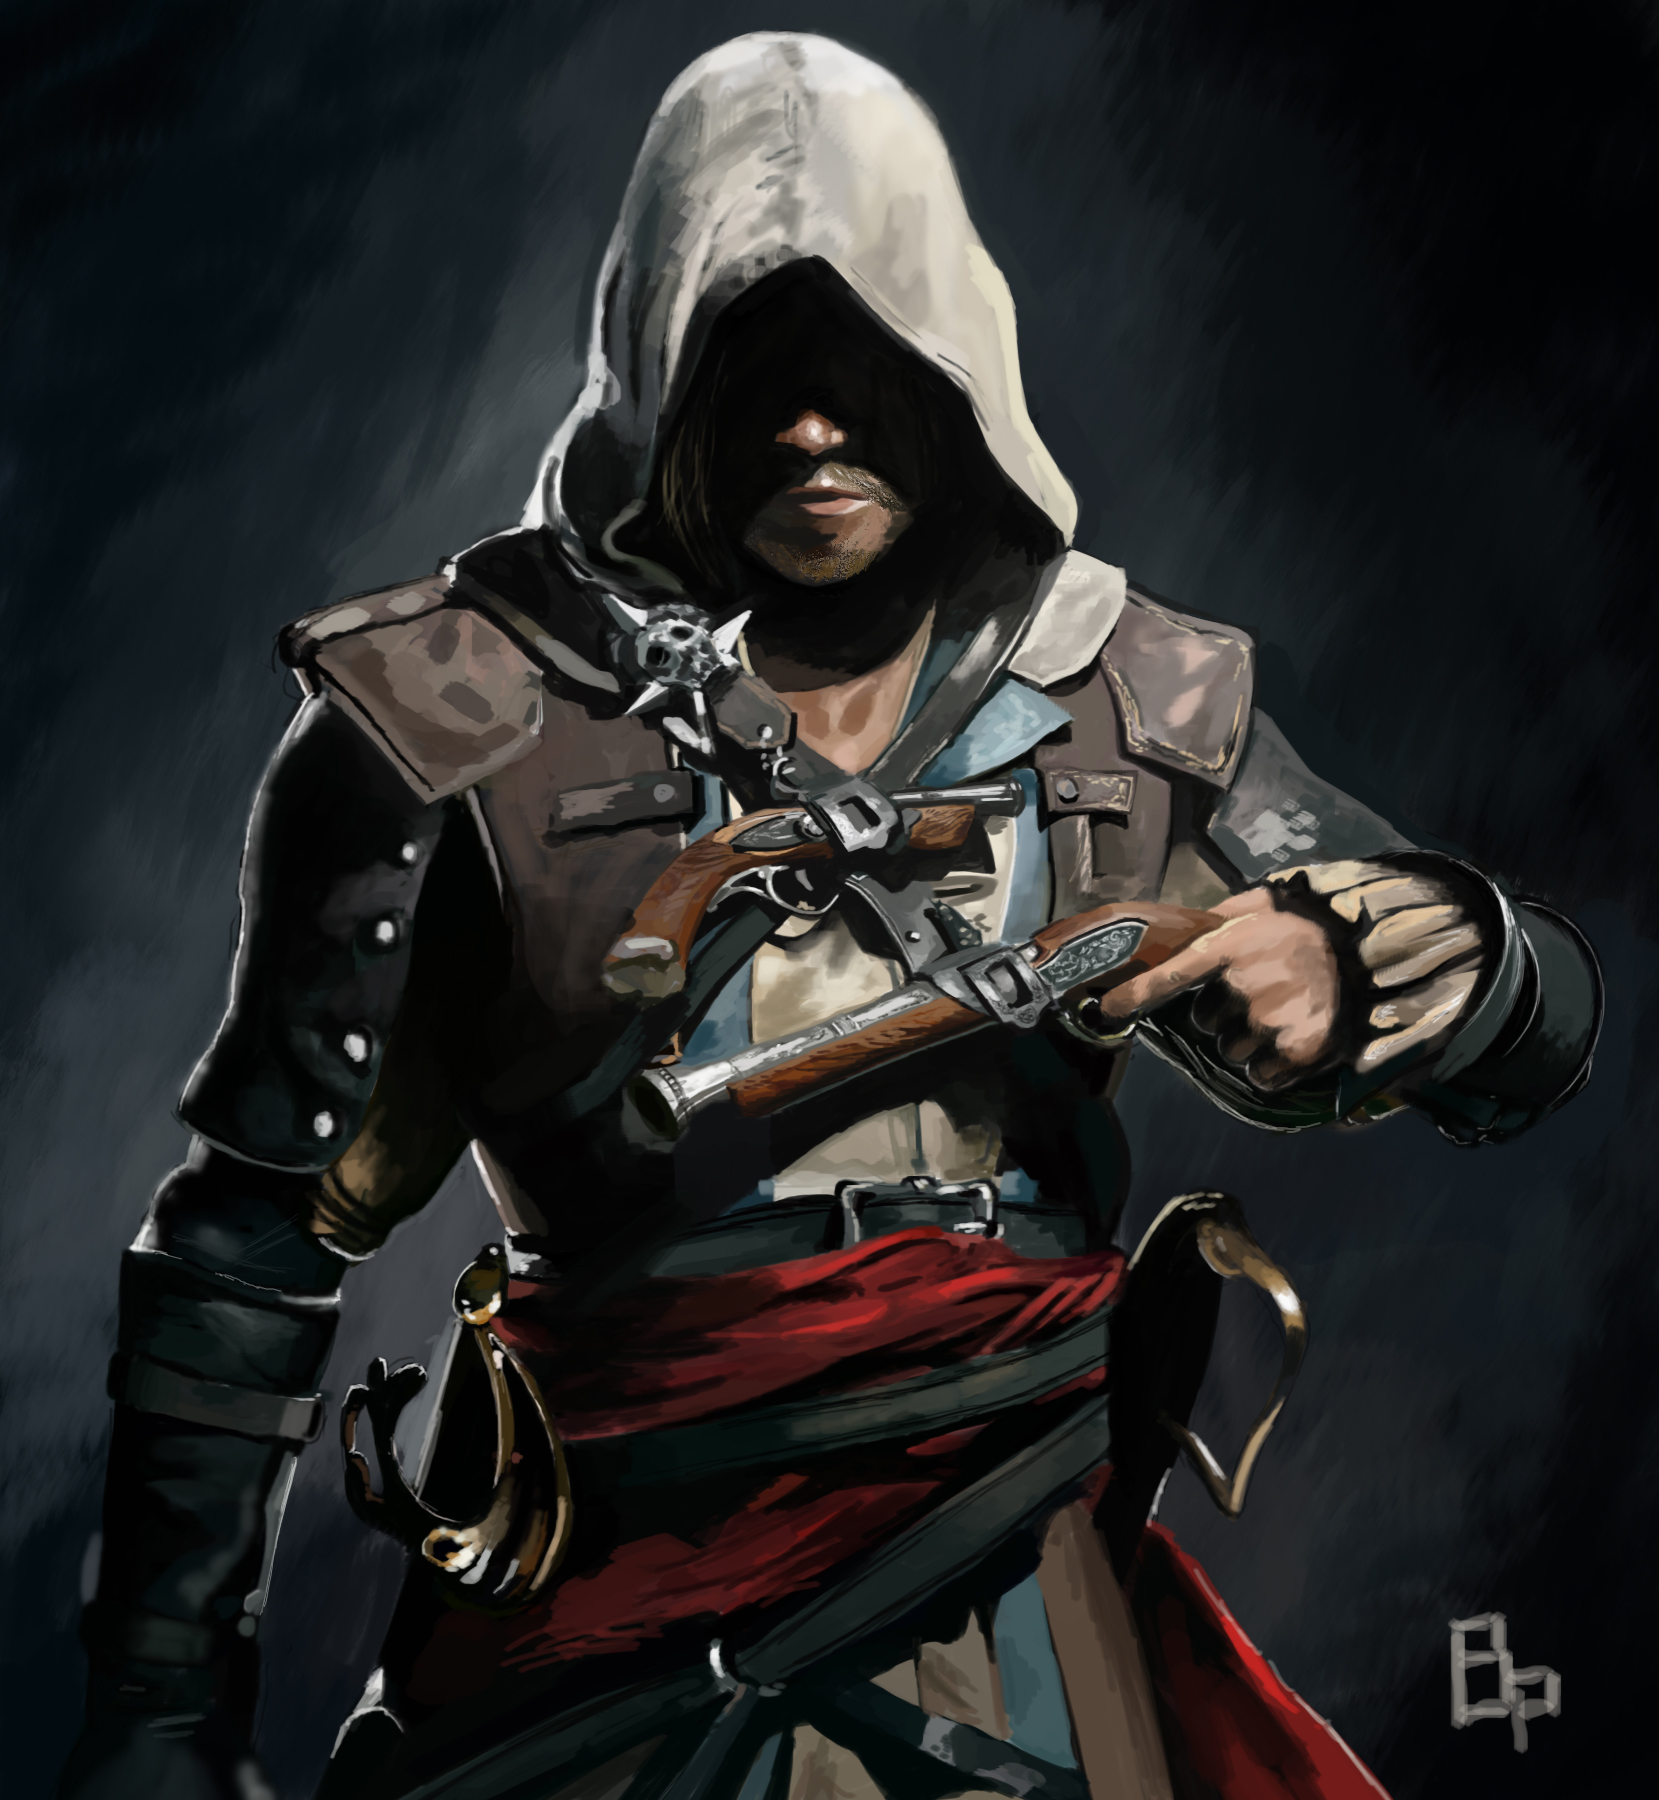 Edward Kenway Assassin S Creed Iv Black Flag By Bustepaul On